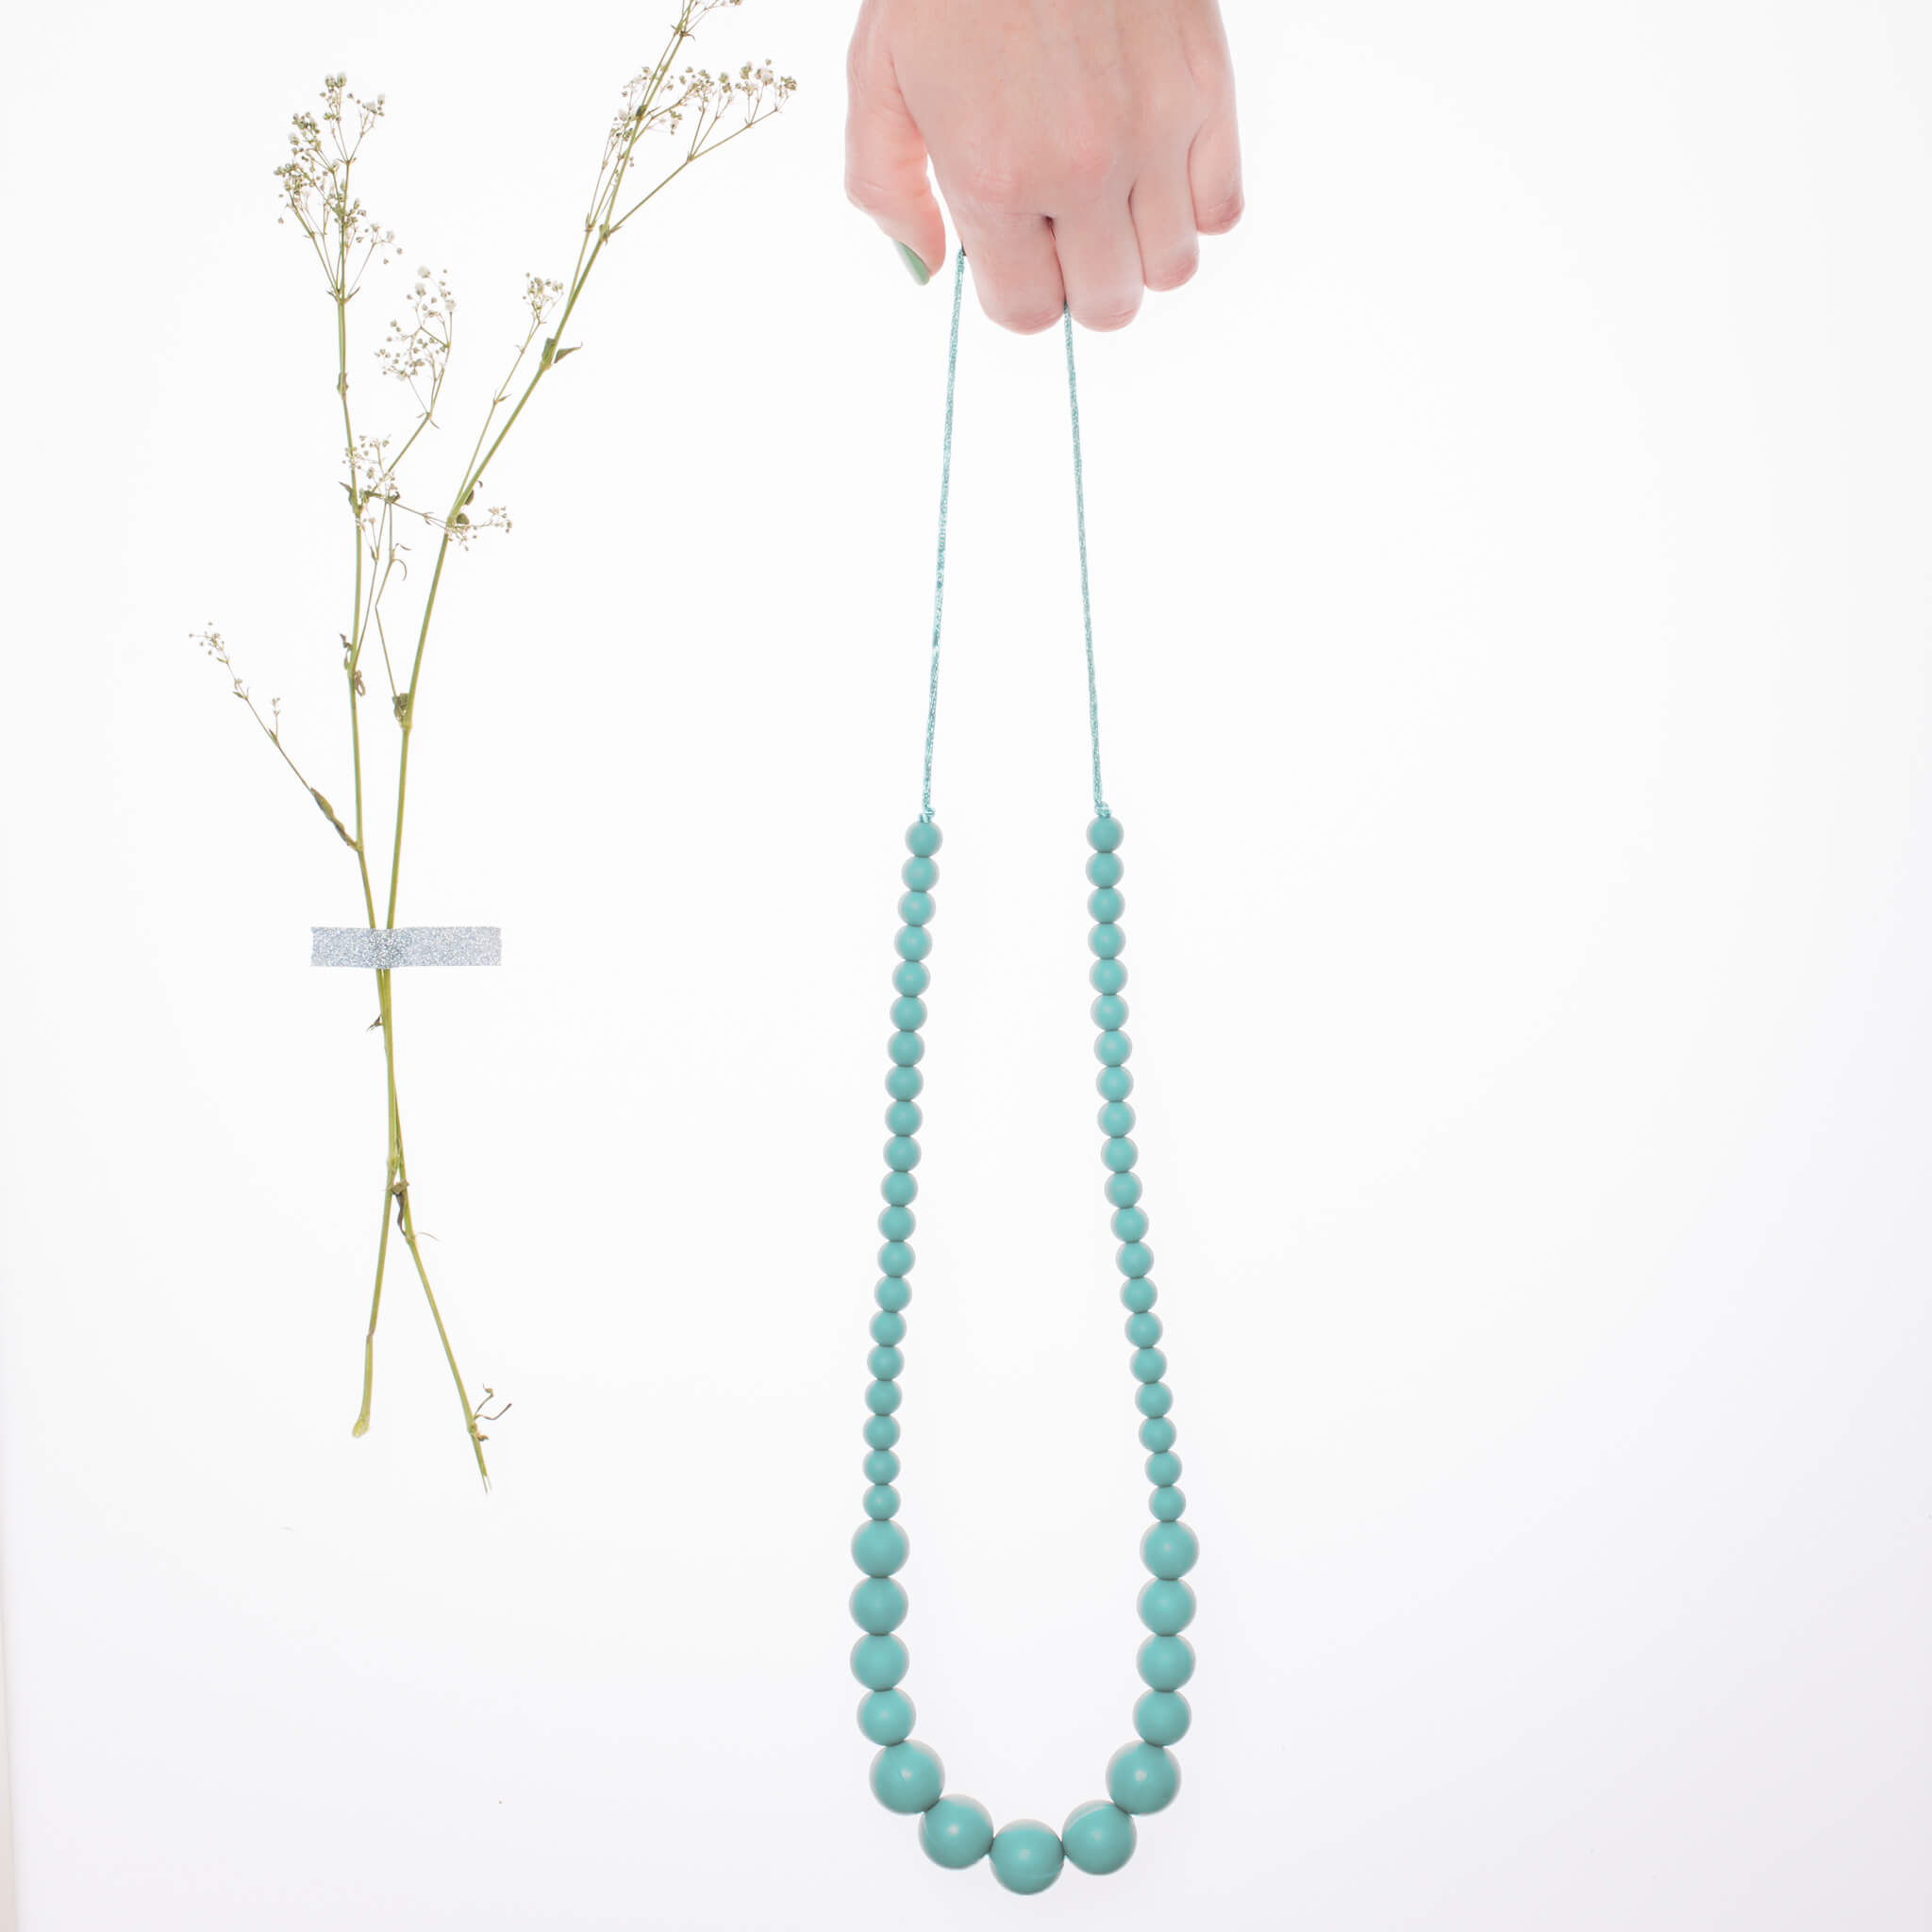 necklaces necklace pinterest blue aqua pin light mala